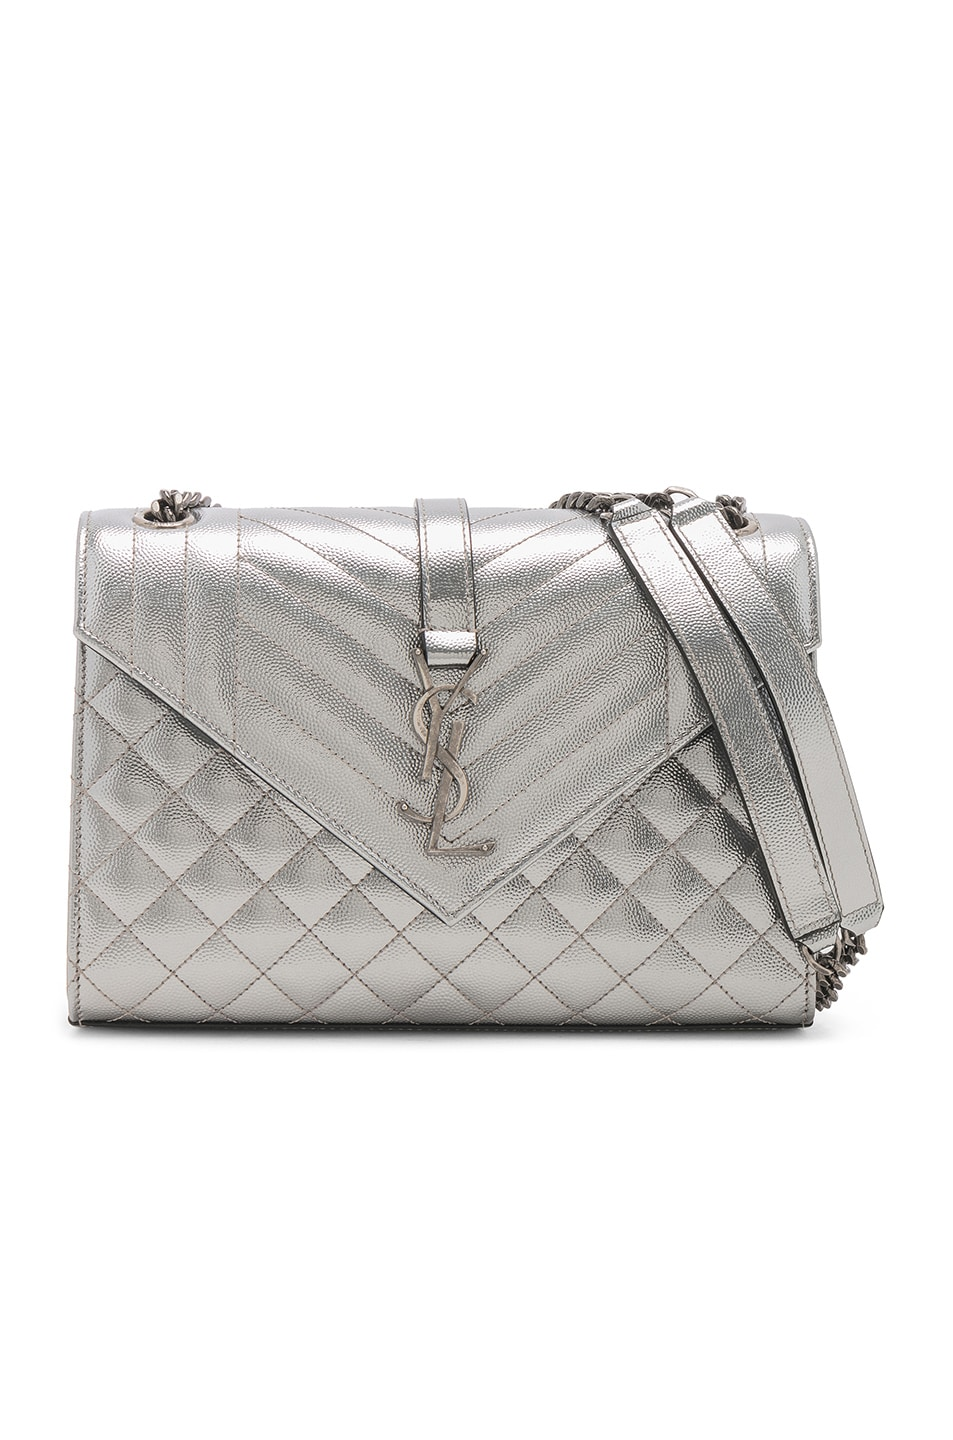 Image 1 of Saint Laurent Medium Envelope Monogramme Bag in Silver